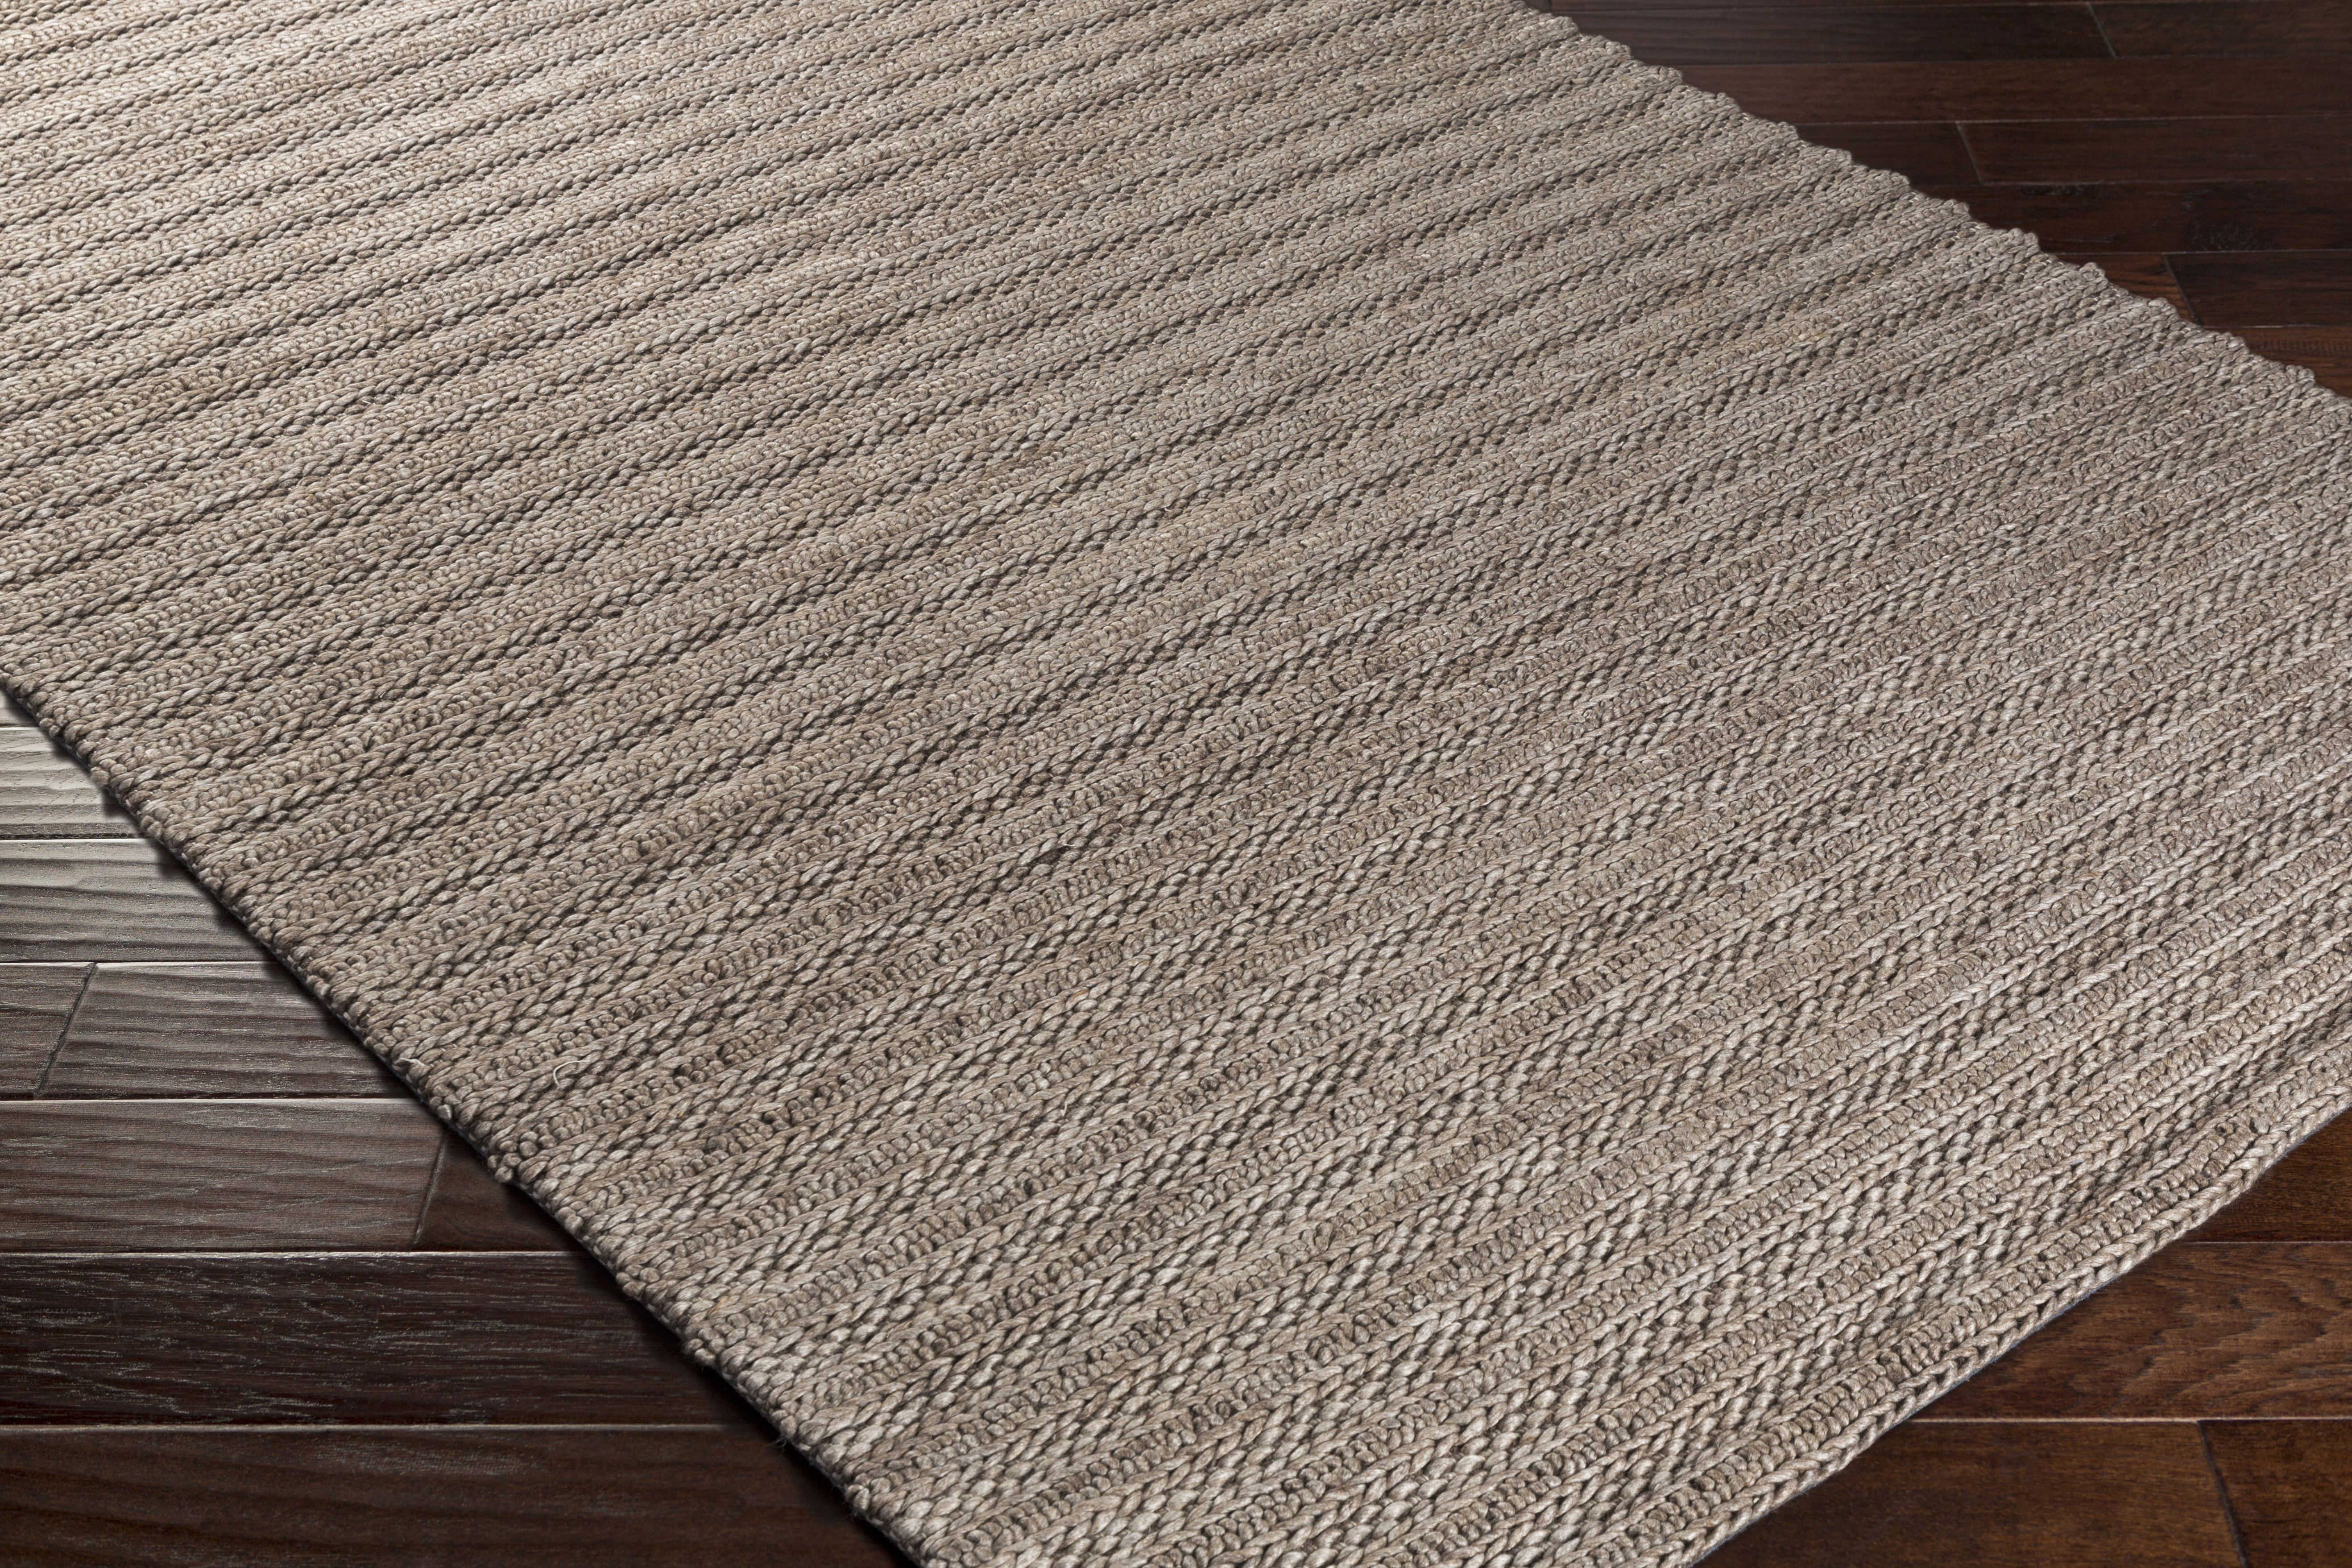 Kindred 2' x 3' Area Rug